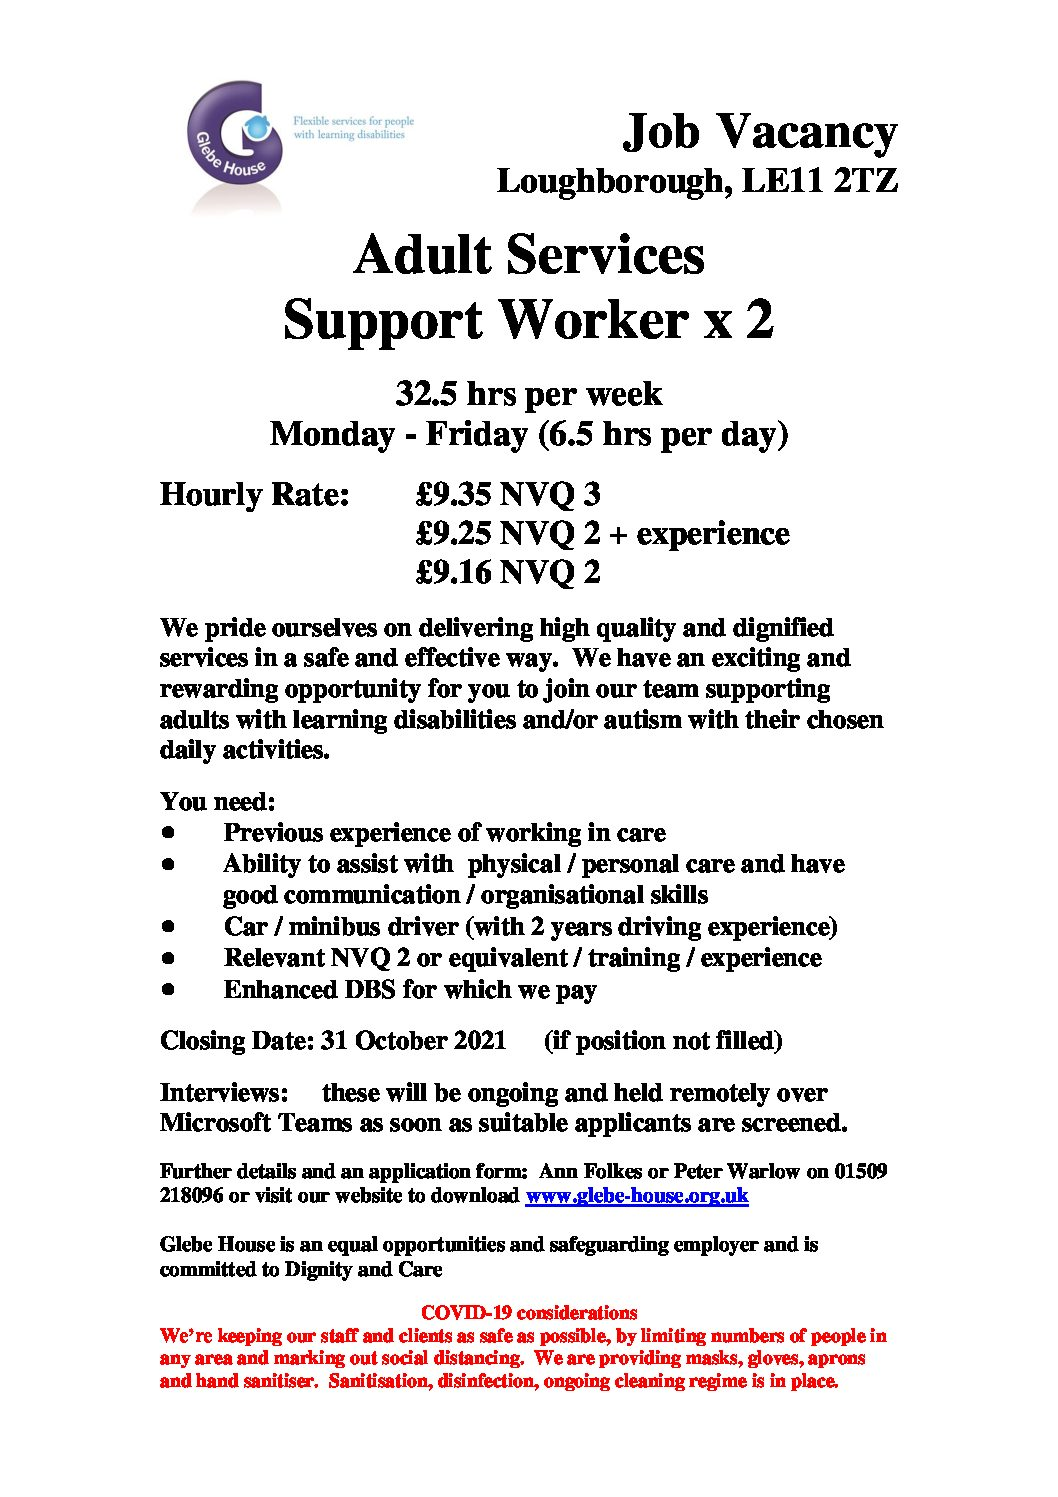 Adult Services Support Worker